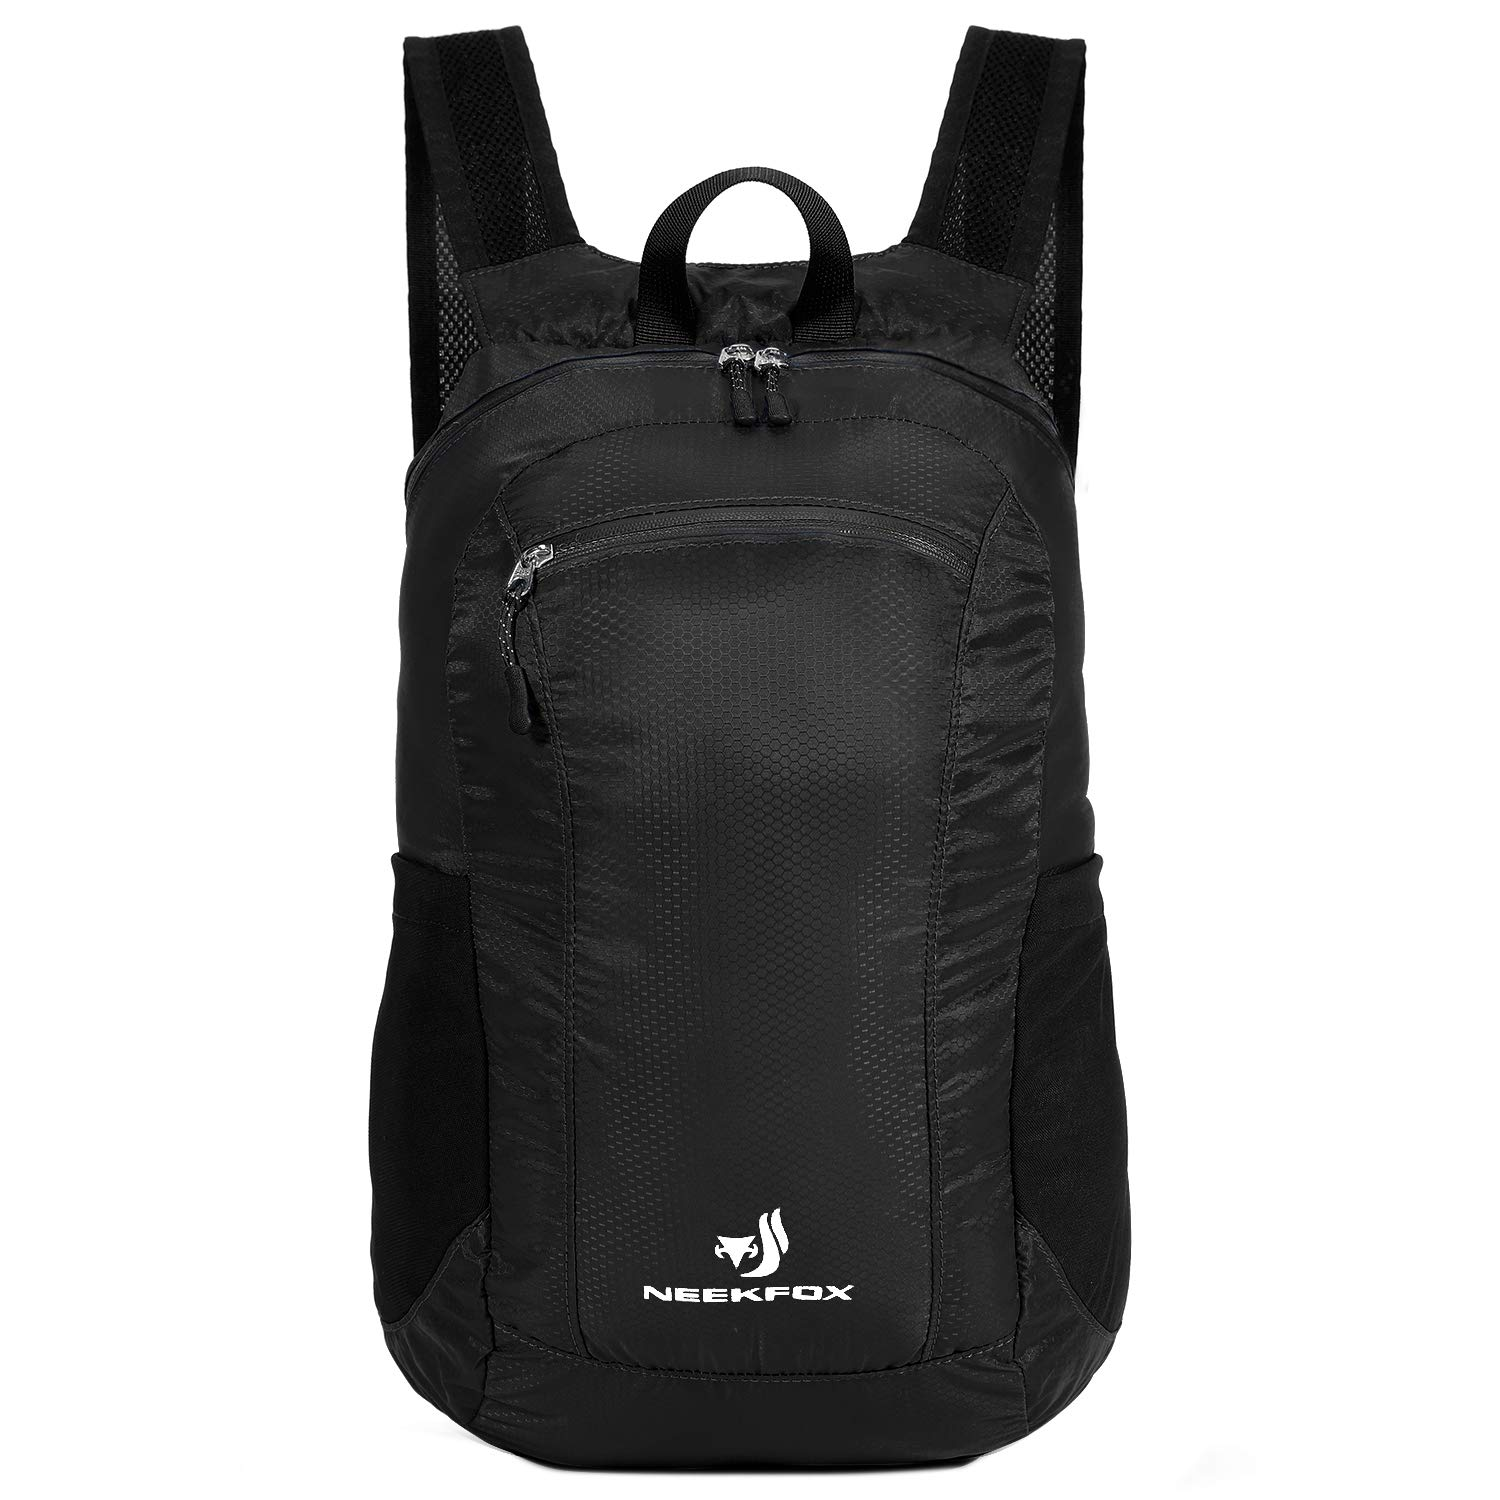 2cc897801bbd NEEKFOX Lightweight Packable Backpack Small Hiking Daypack 18L Water  Resistant Travel Mini Daypack for Women Men